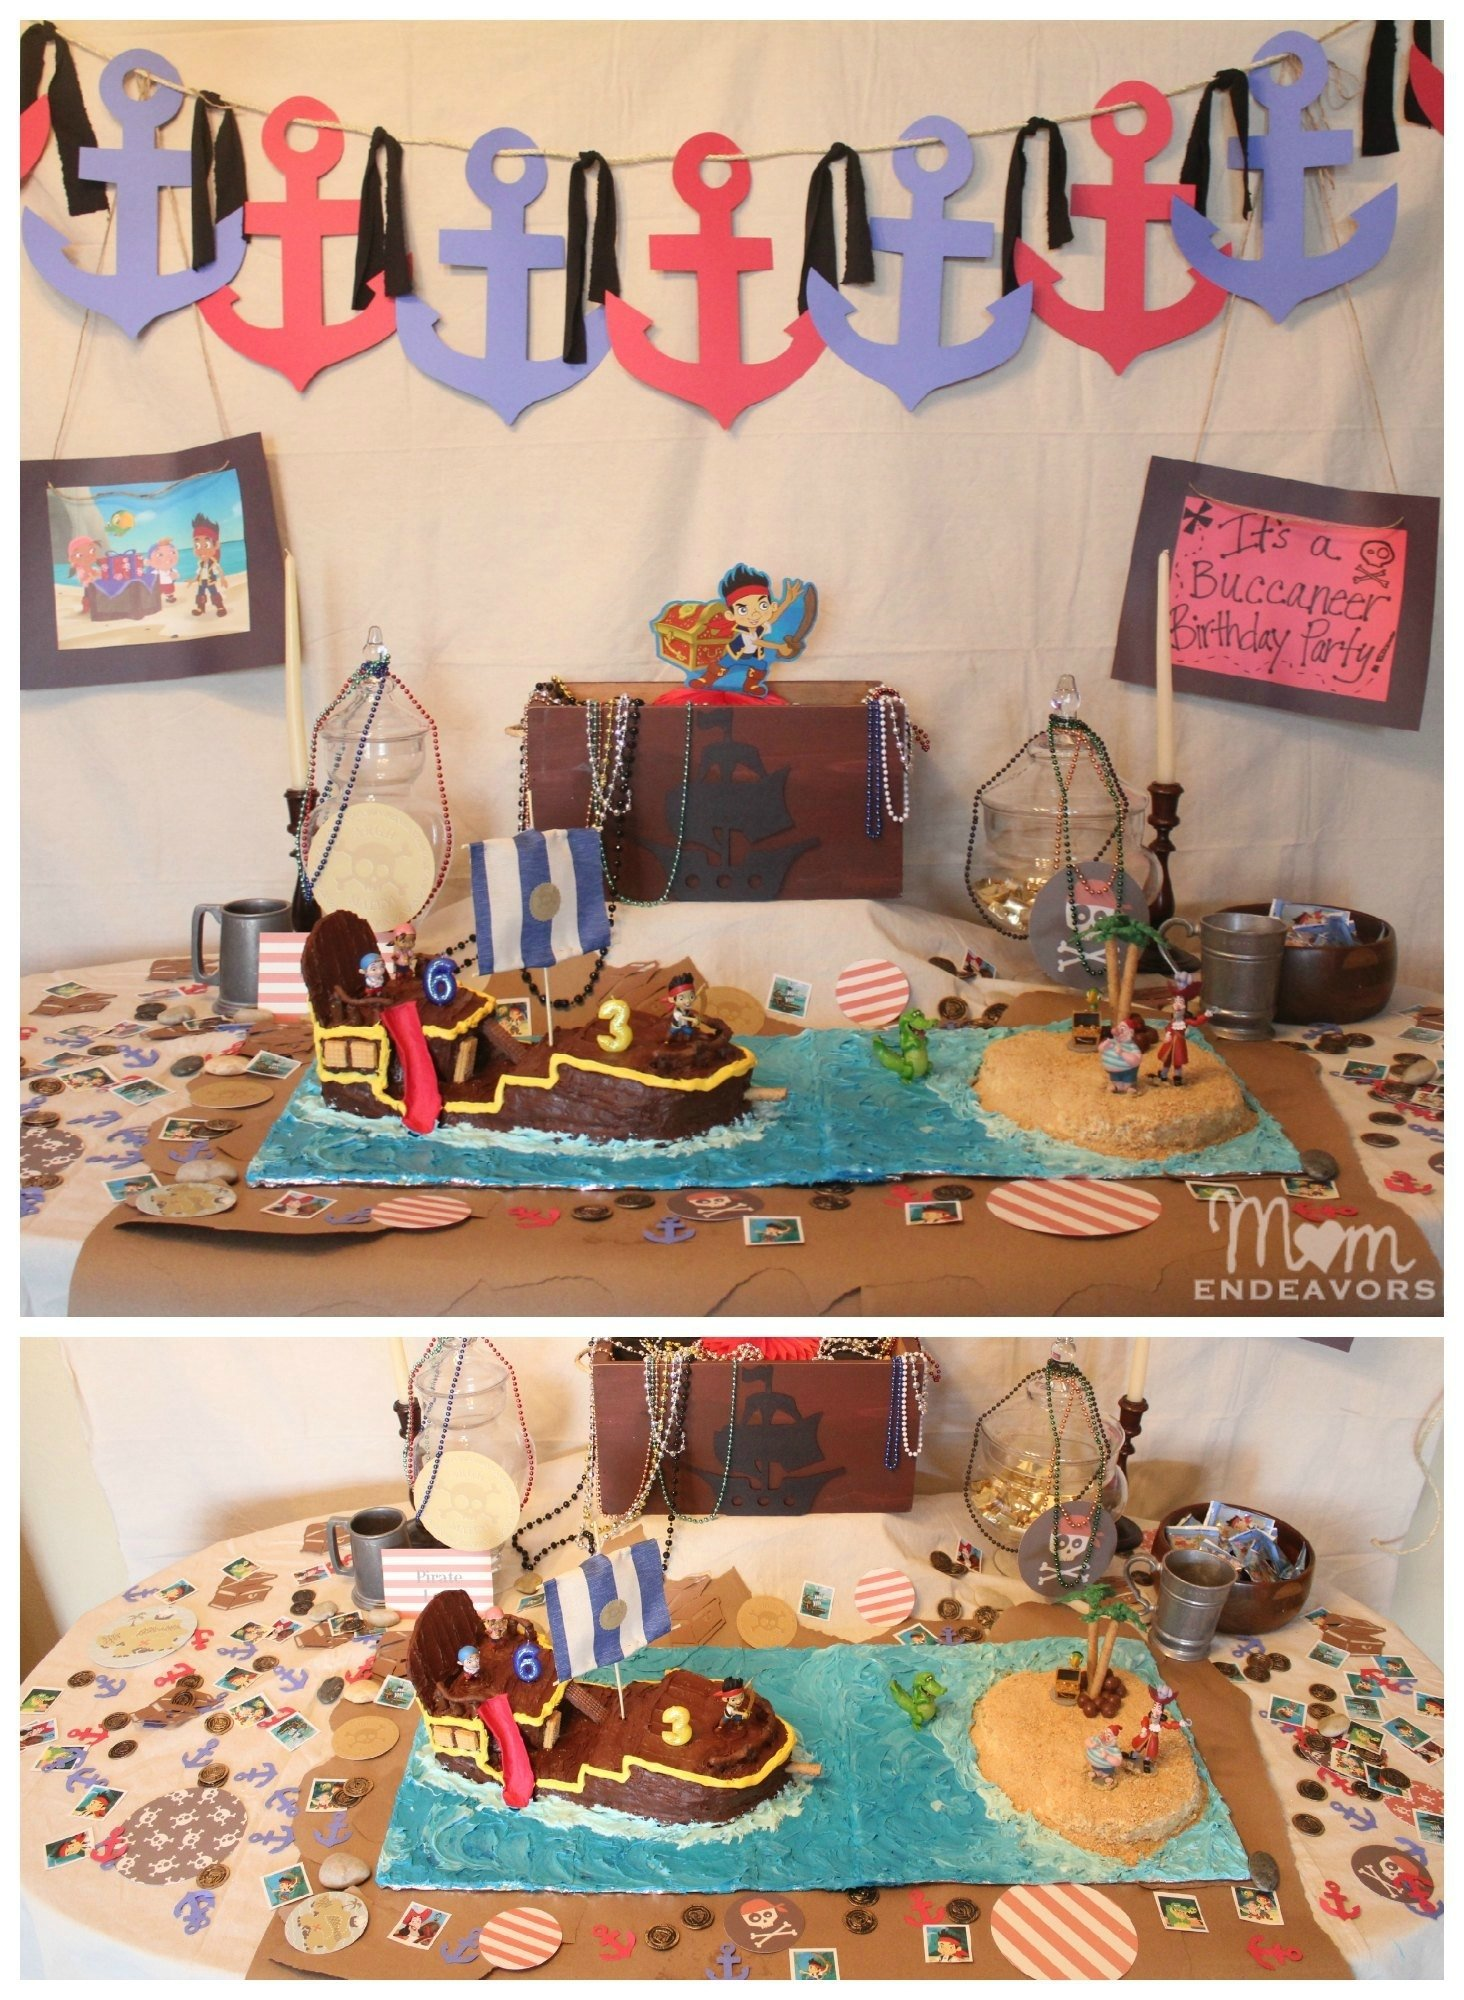 10 Pretty Jake And The Neverland Pirates Birthday Party Ideas jake and the never land pirates birthday party 2020